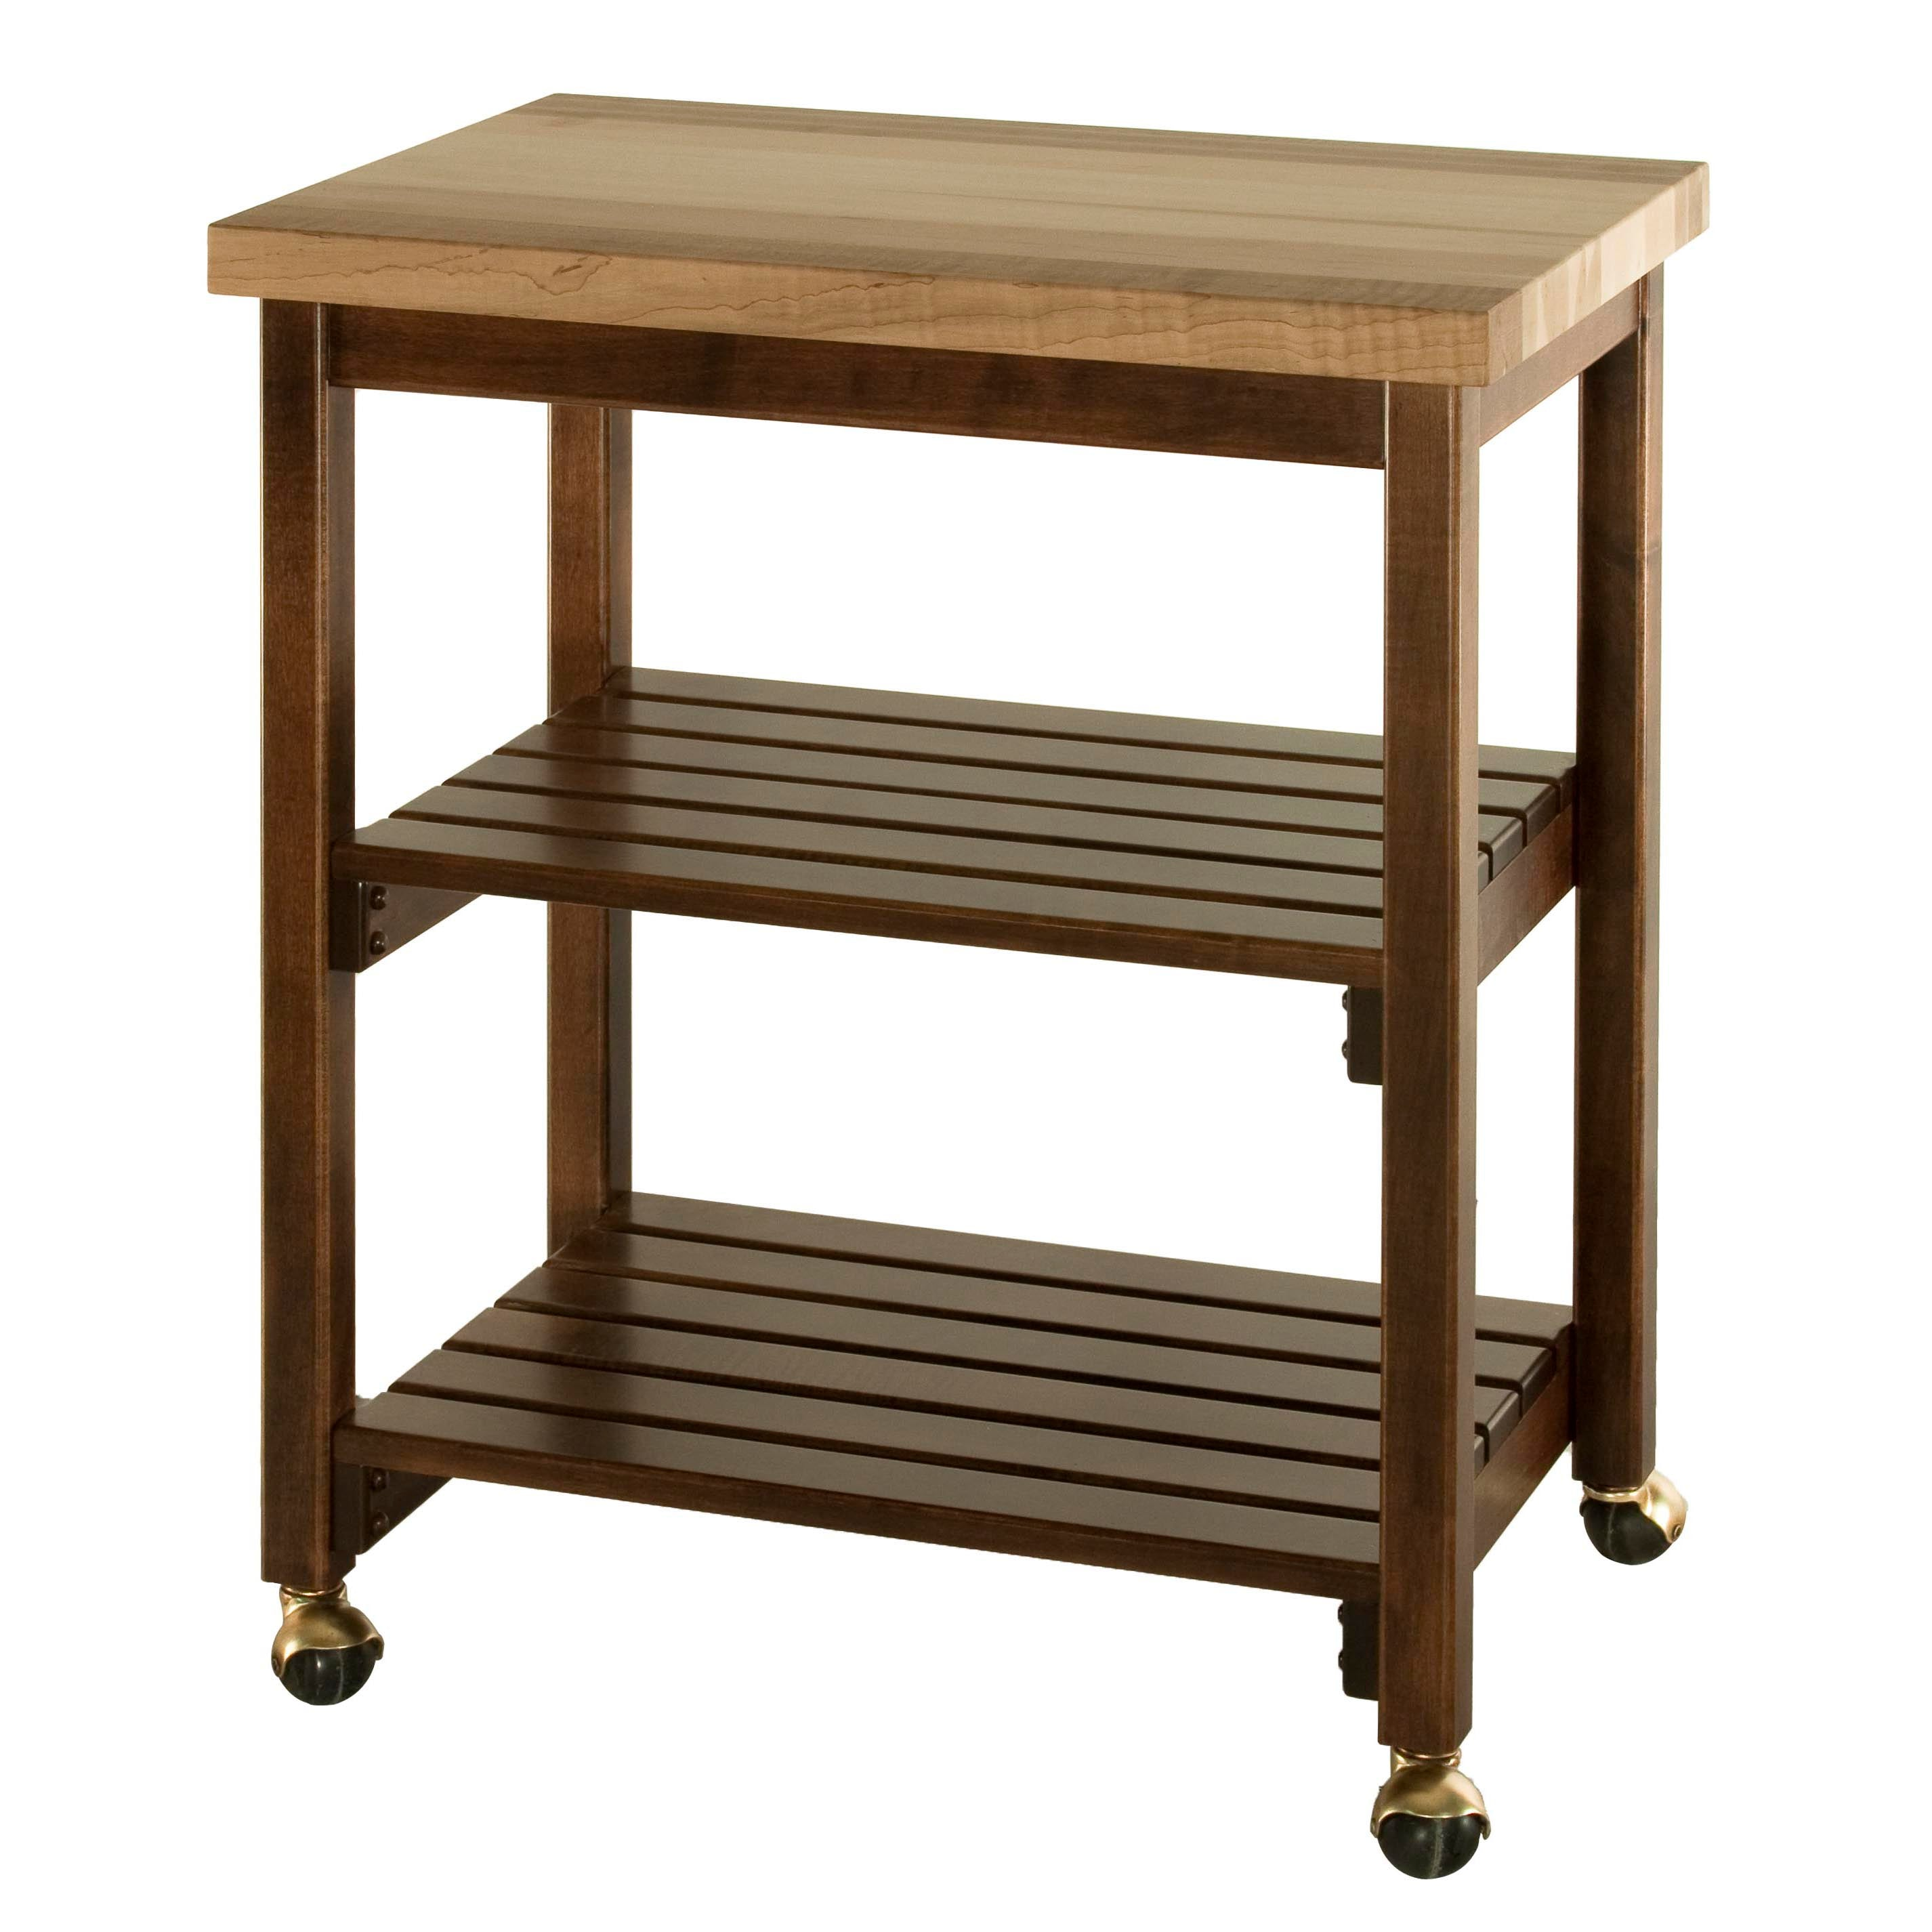 Serving cart with butcher block